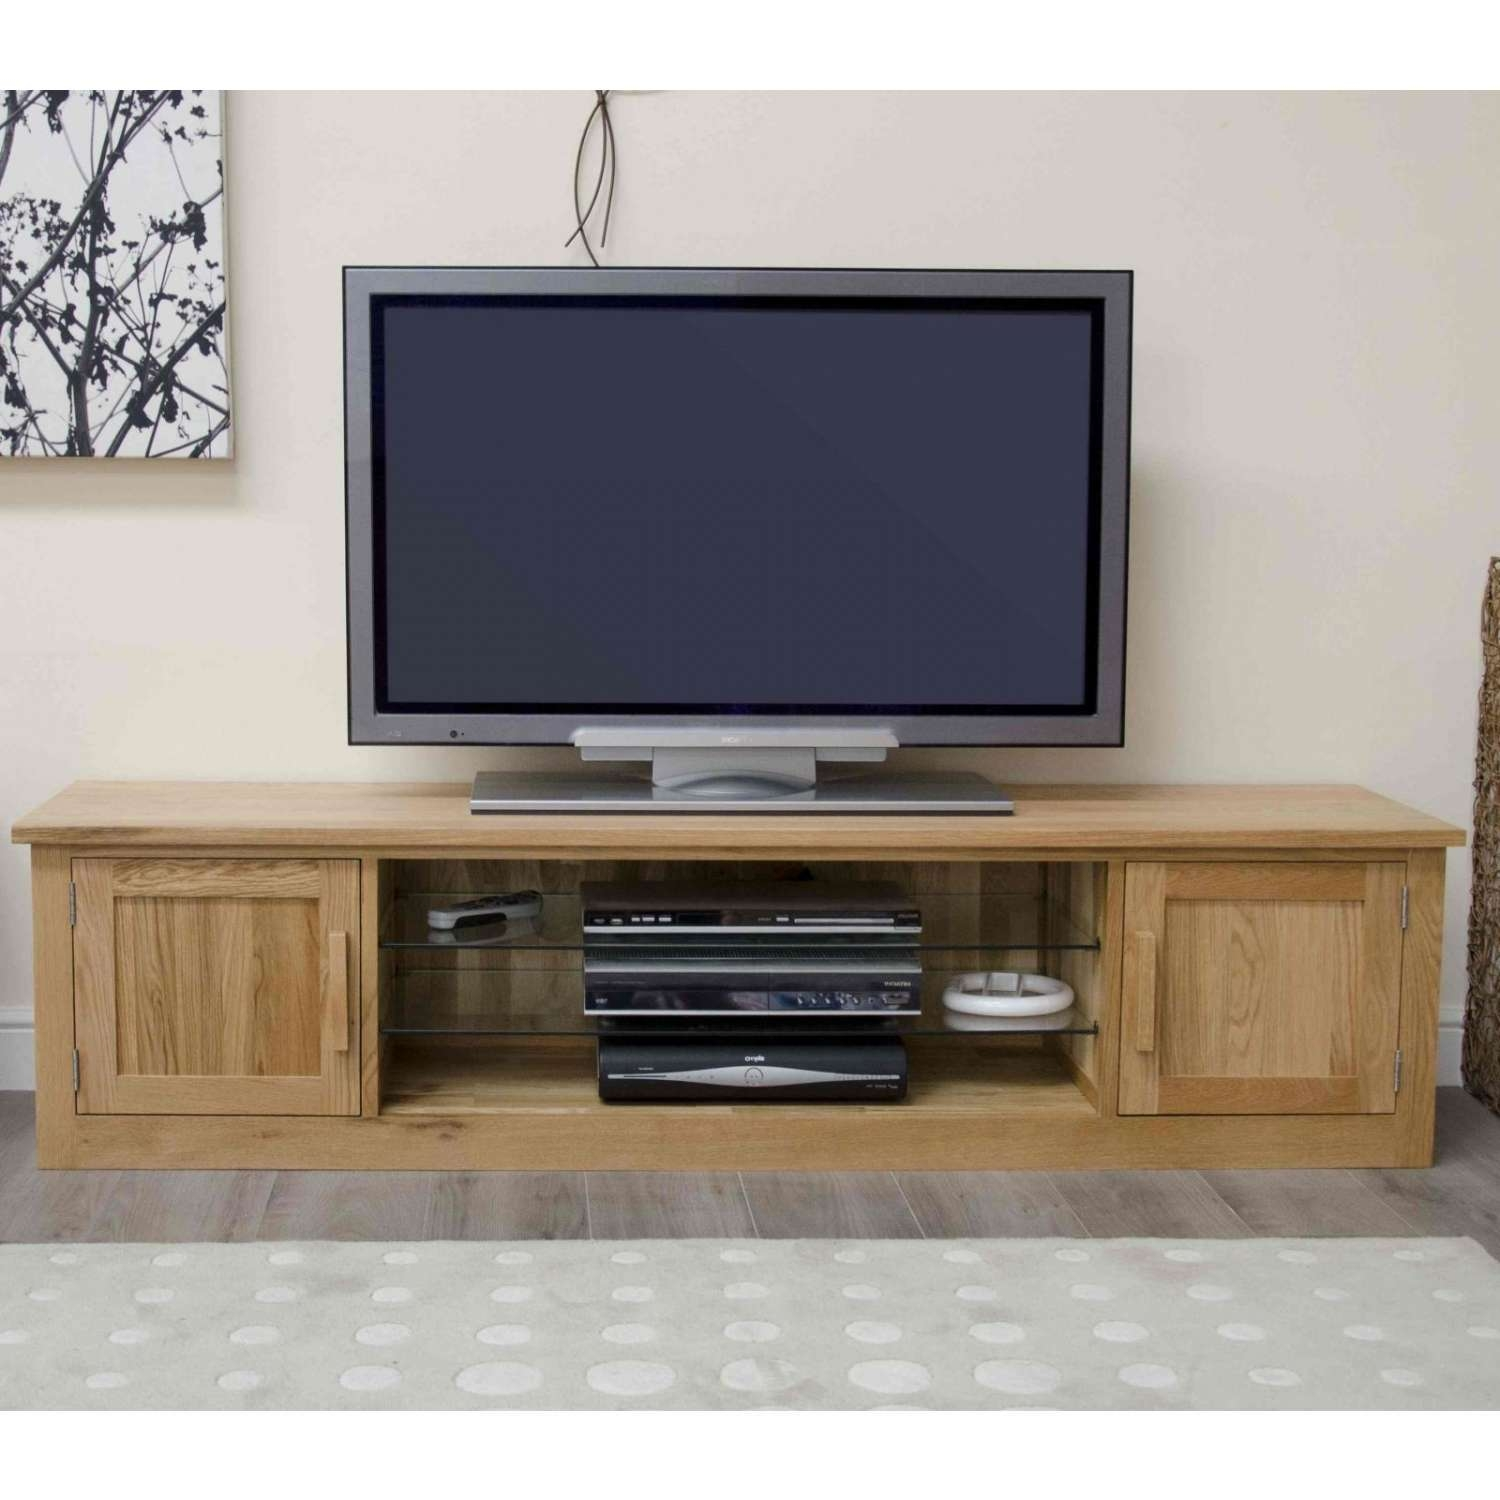 Arden Solid Oak Living Room Furniture Large Widescreen Tv Cabinet Pertaining To Large Oak Tv Stands (View 2 of 15)